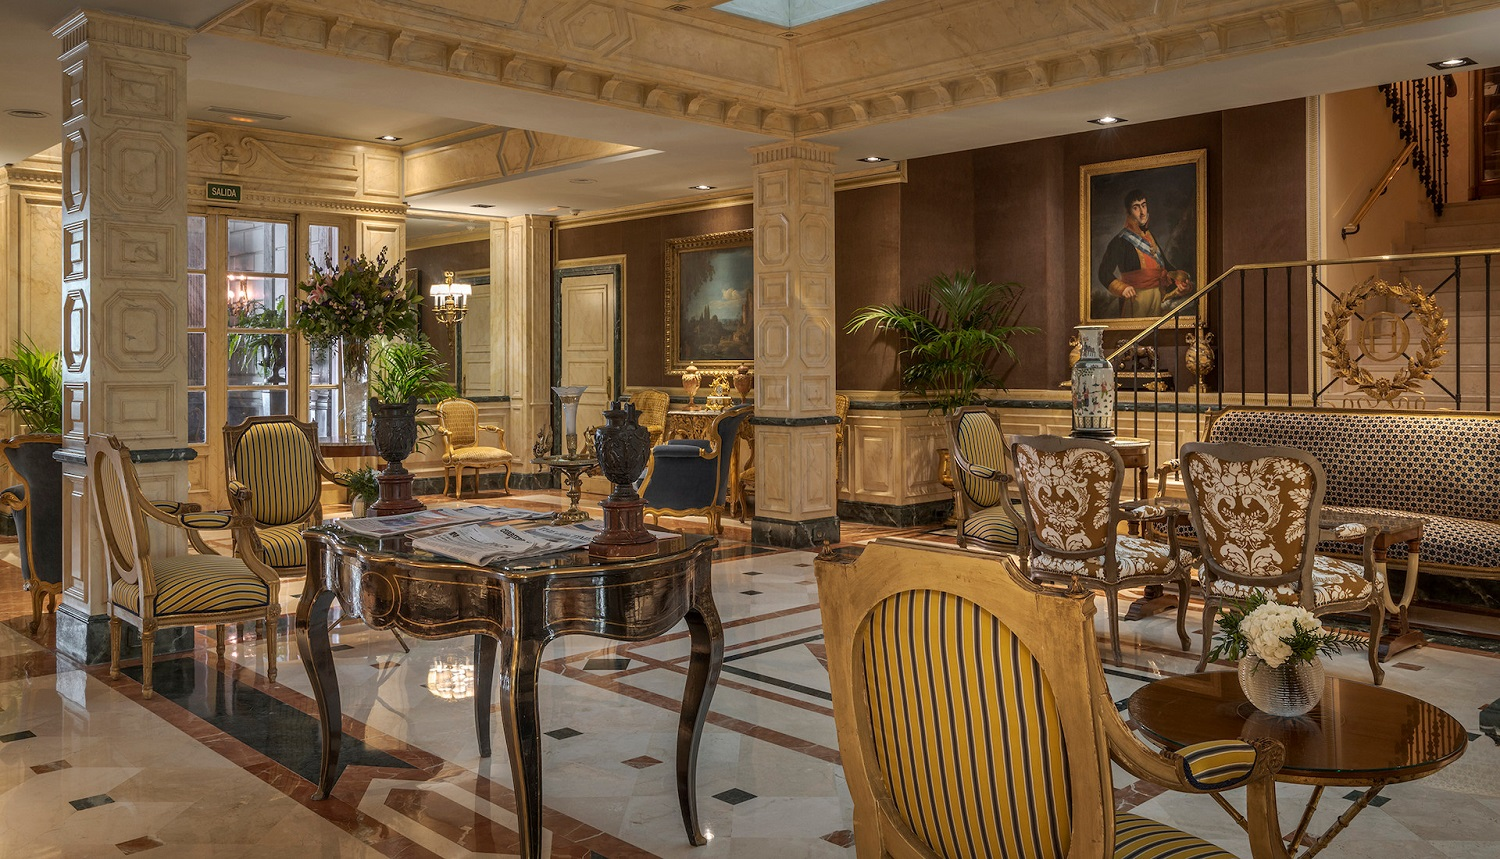 The Relais & Chateaux Orfila Hotel In Madrid